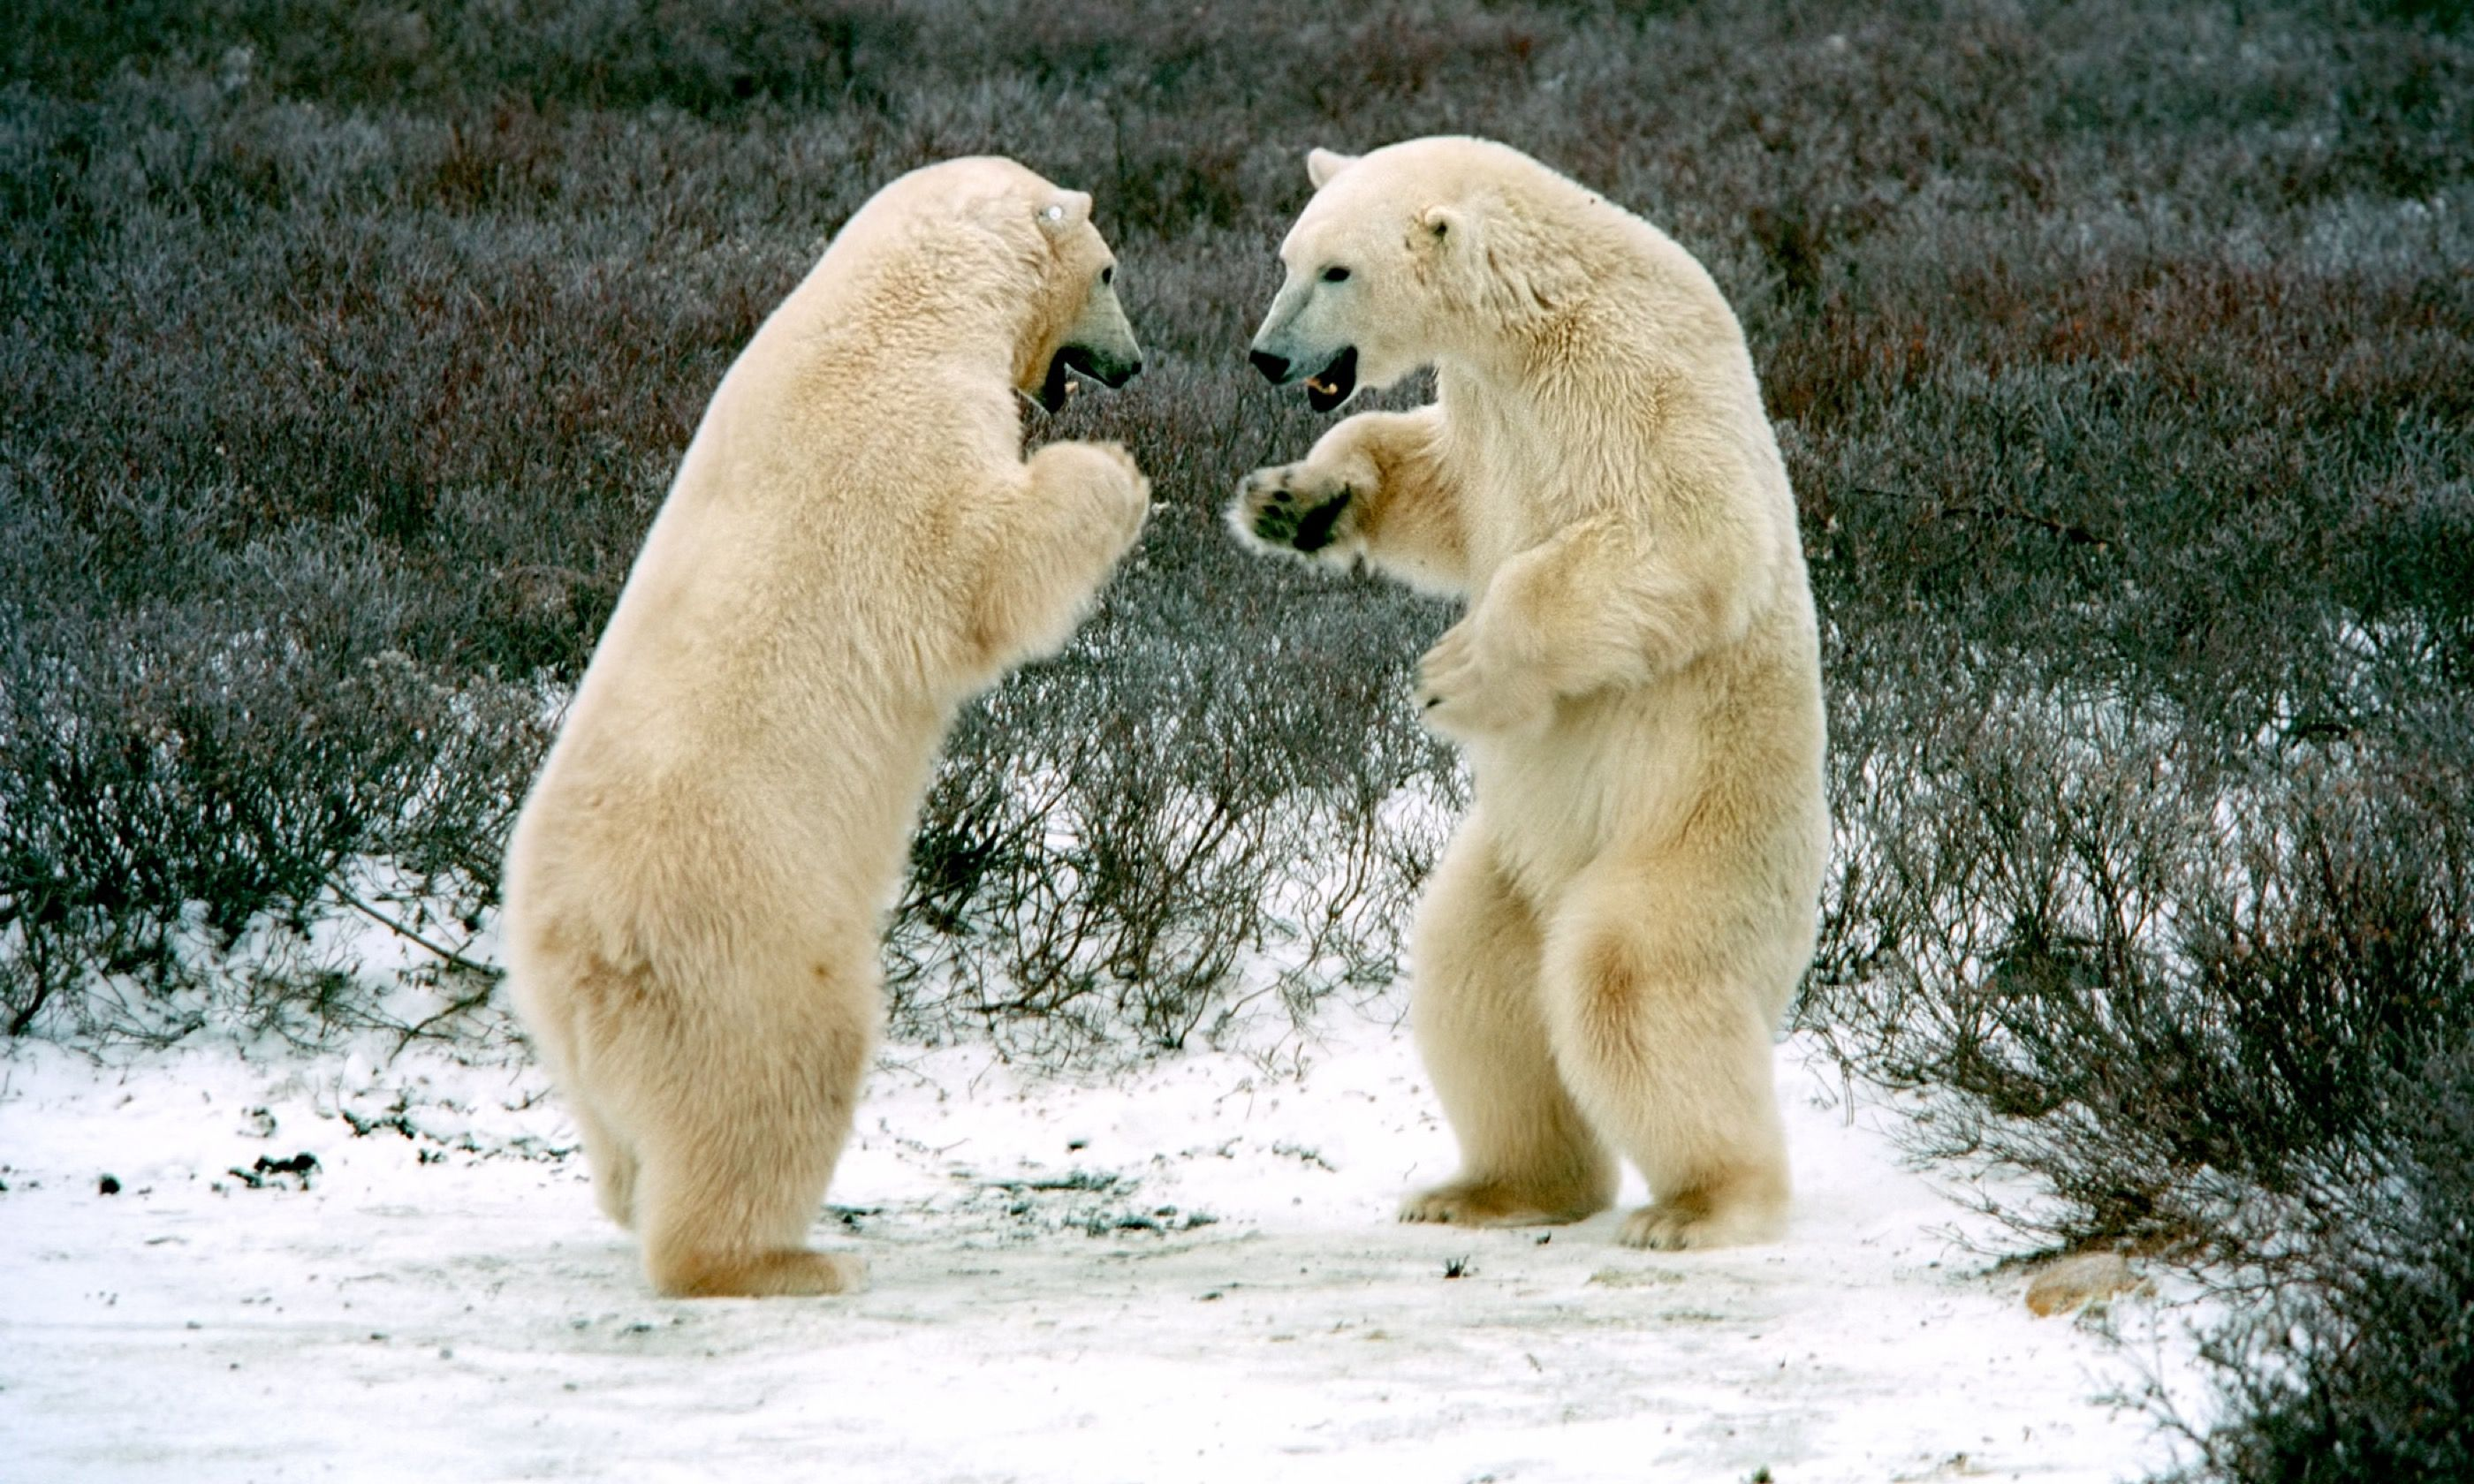 Polar bears in the tundra near Churchill (Shutterstock.com)